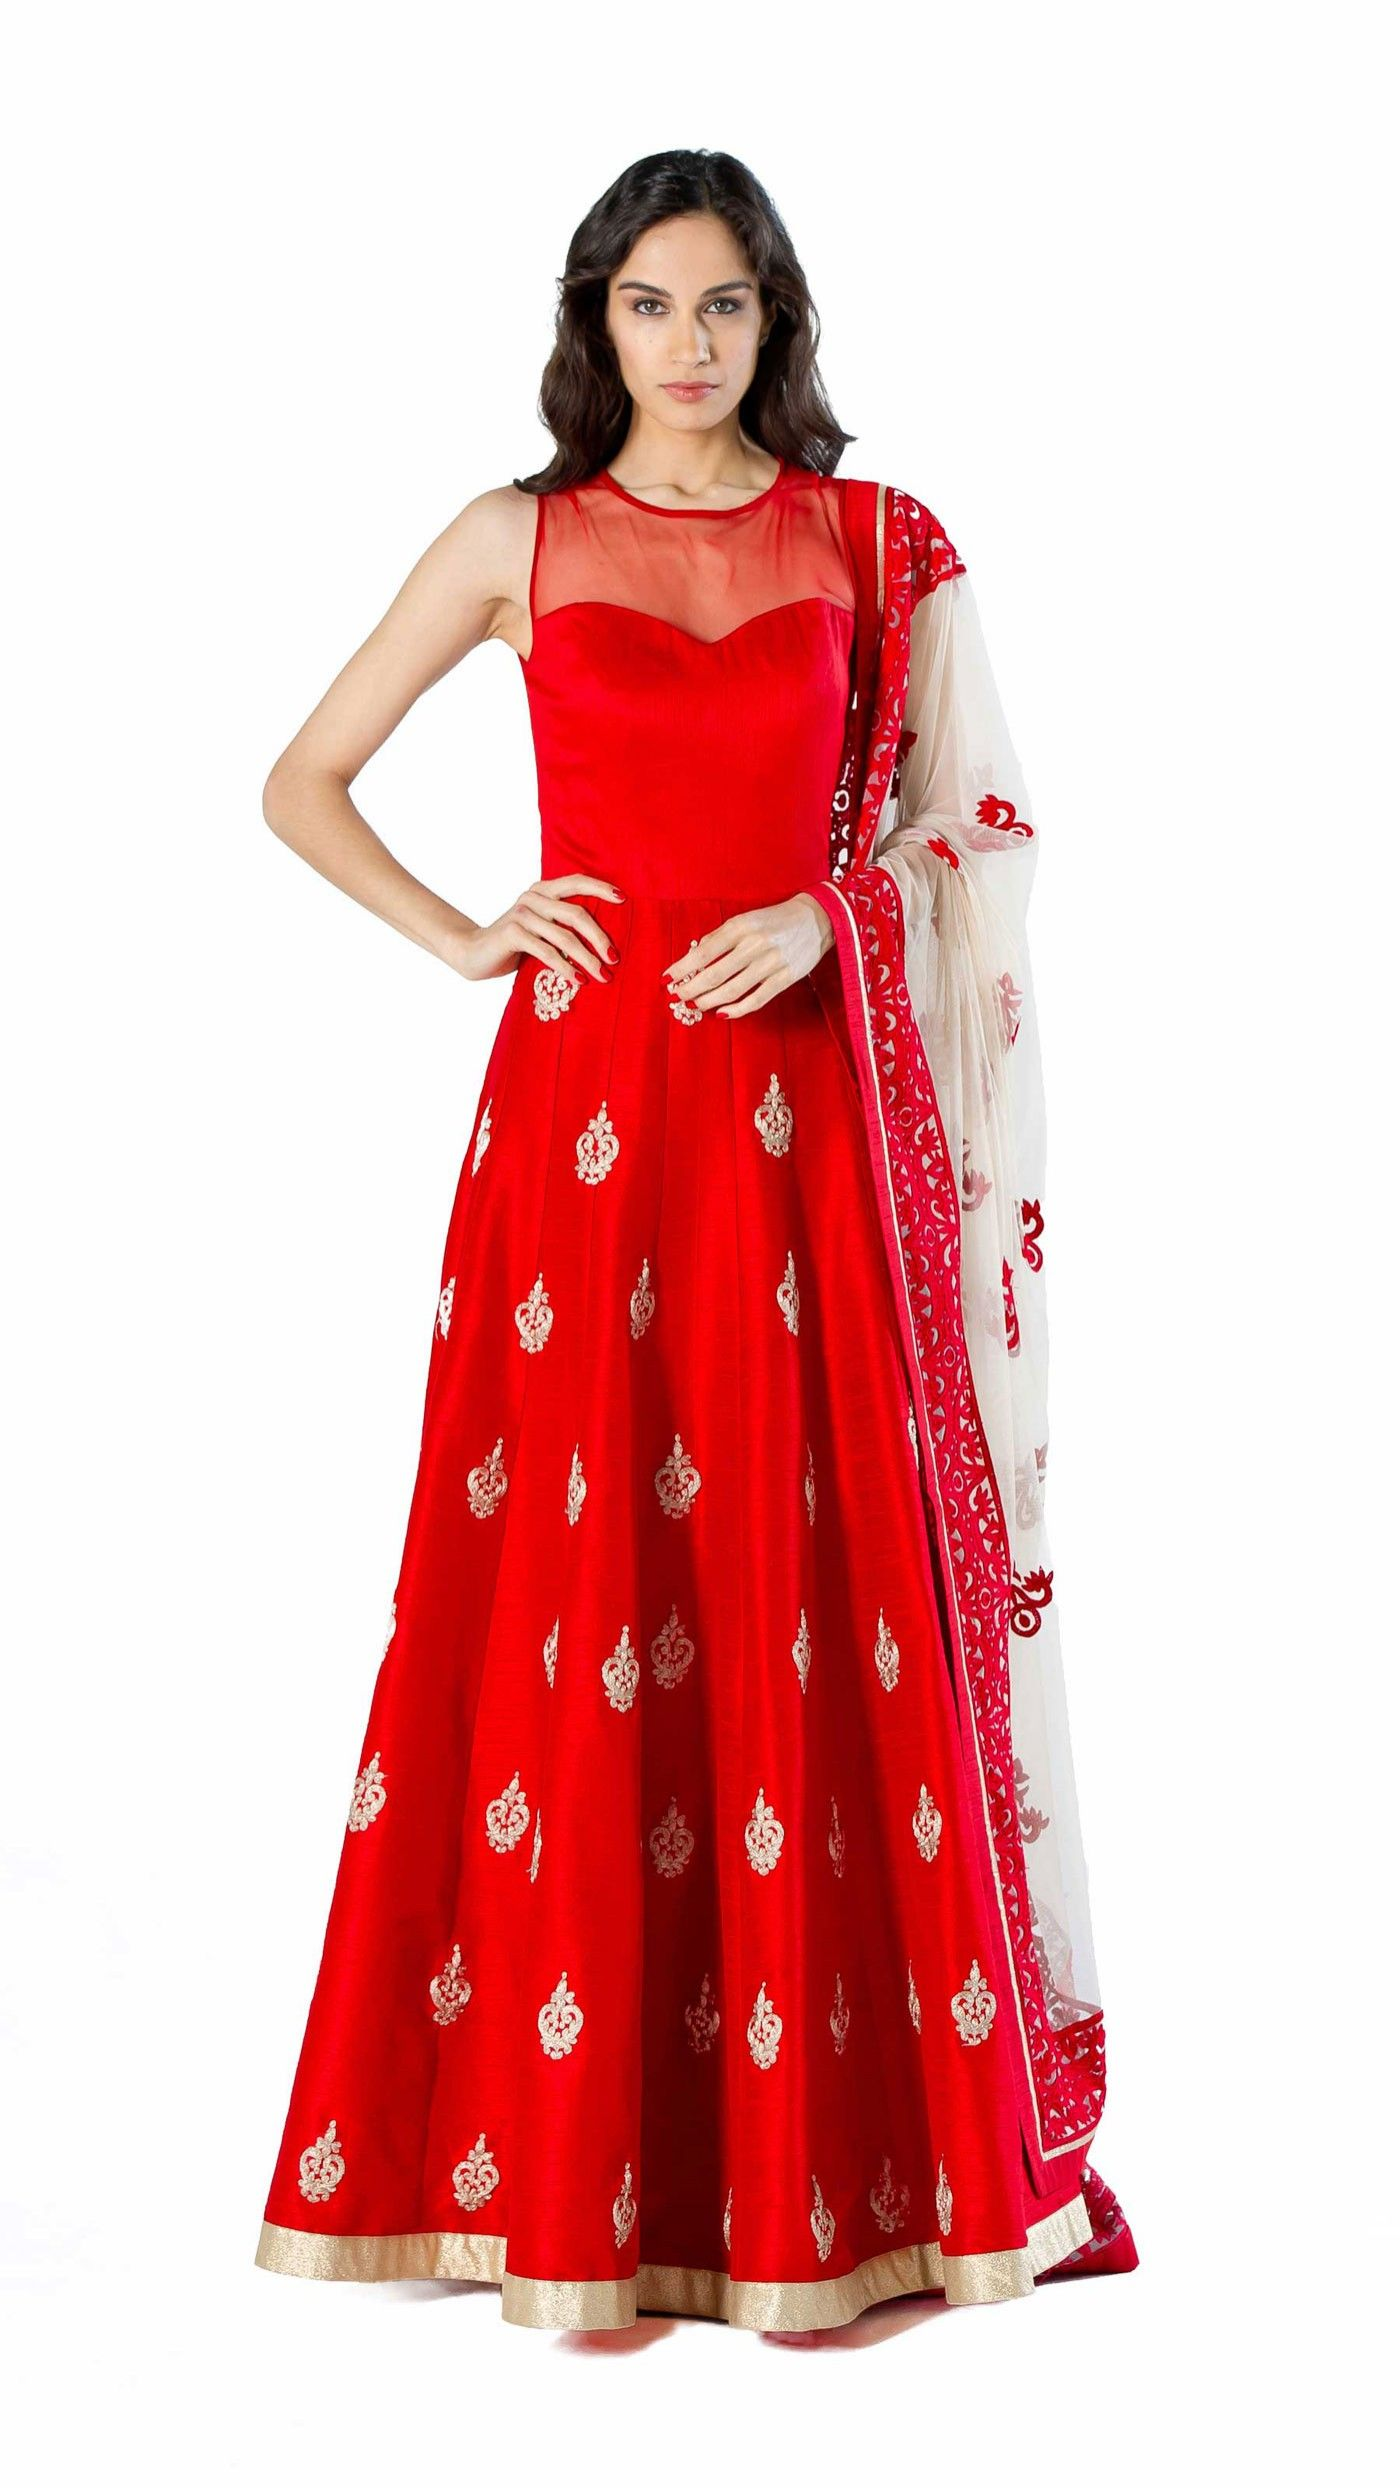 a3fdd1ac63 Red Raw Silk Gown | Indian Fashion | Dresses, Silk gown, Bridal ...